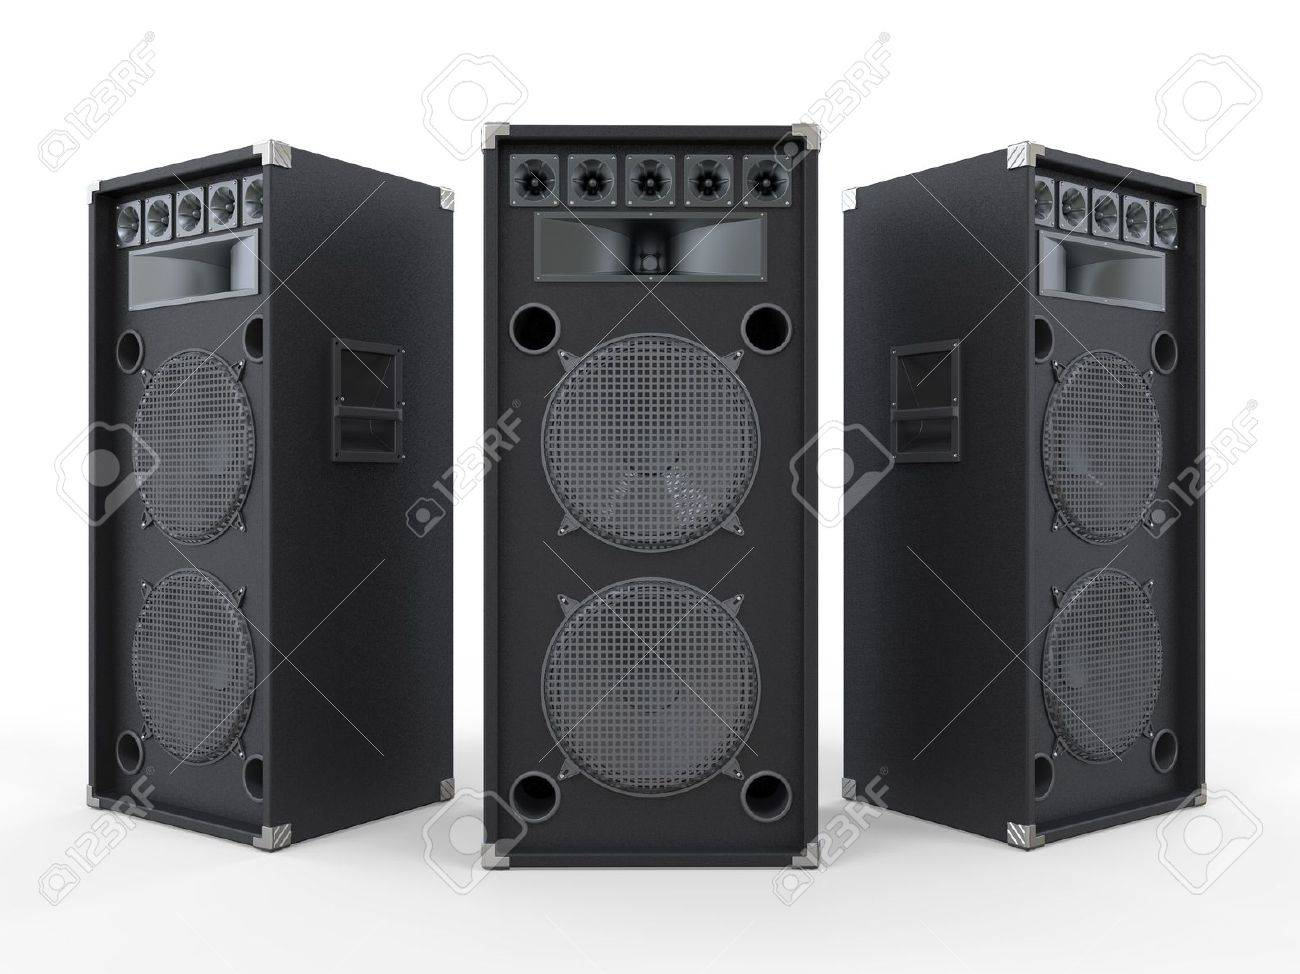 Large Audio Speakers Isolated on White Background Stock Photo - 19659952